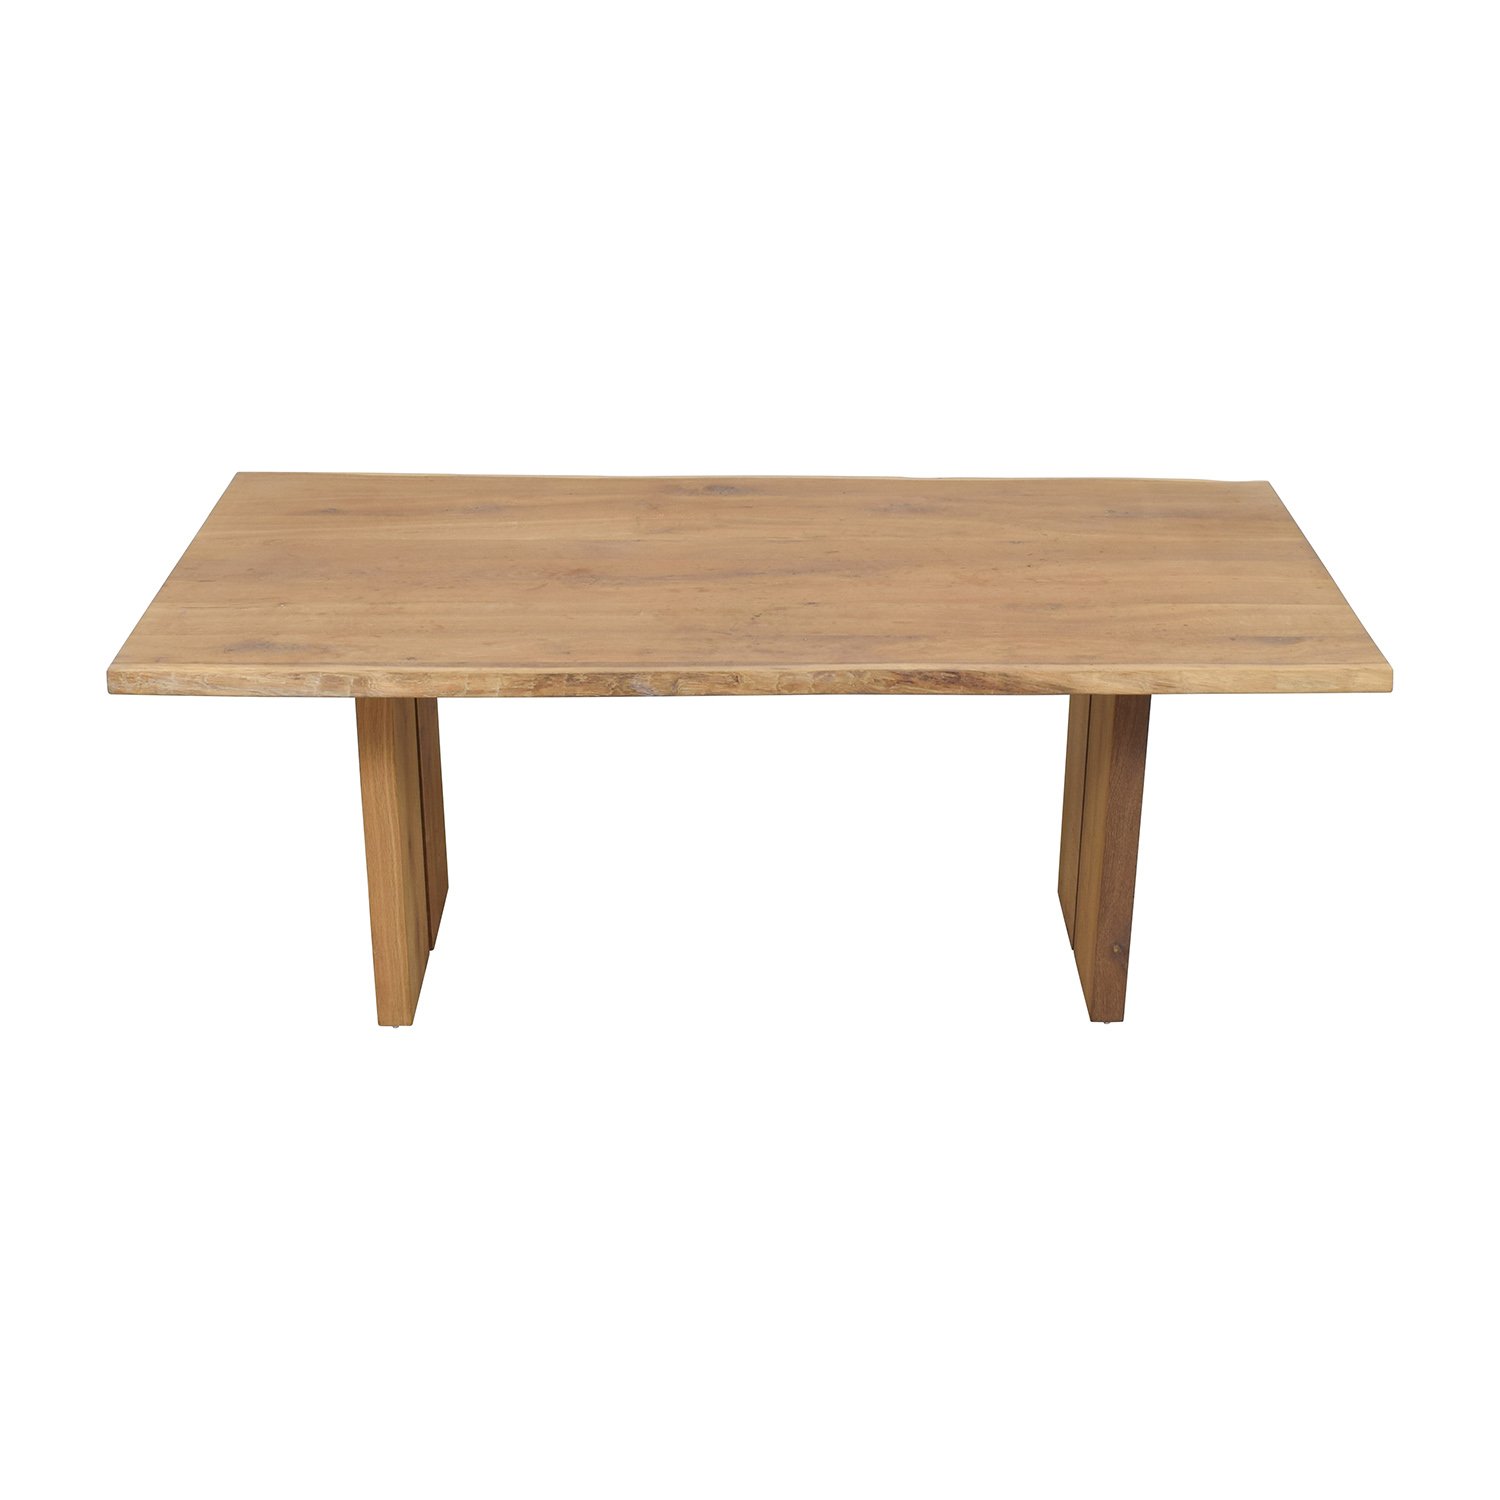 Modern Wood Plank Dining Table / Tables